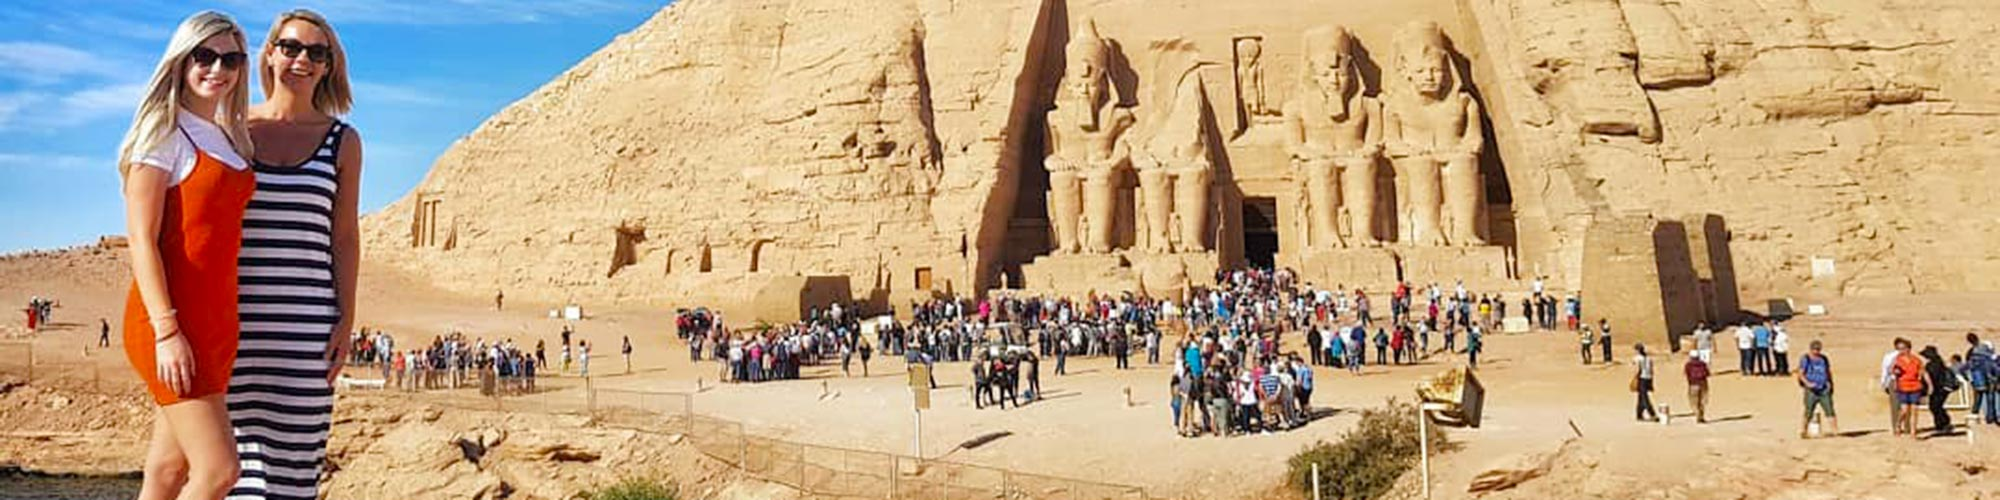 Abu Simbel Temple - Marsa Alam Excursions - Tours from Hurghada